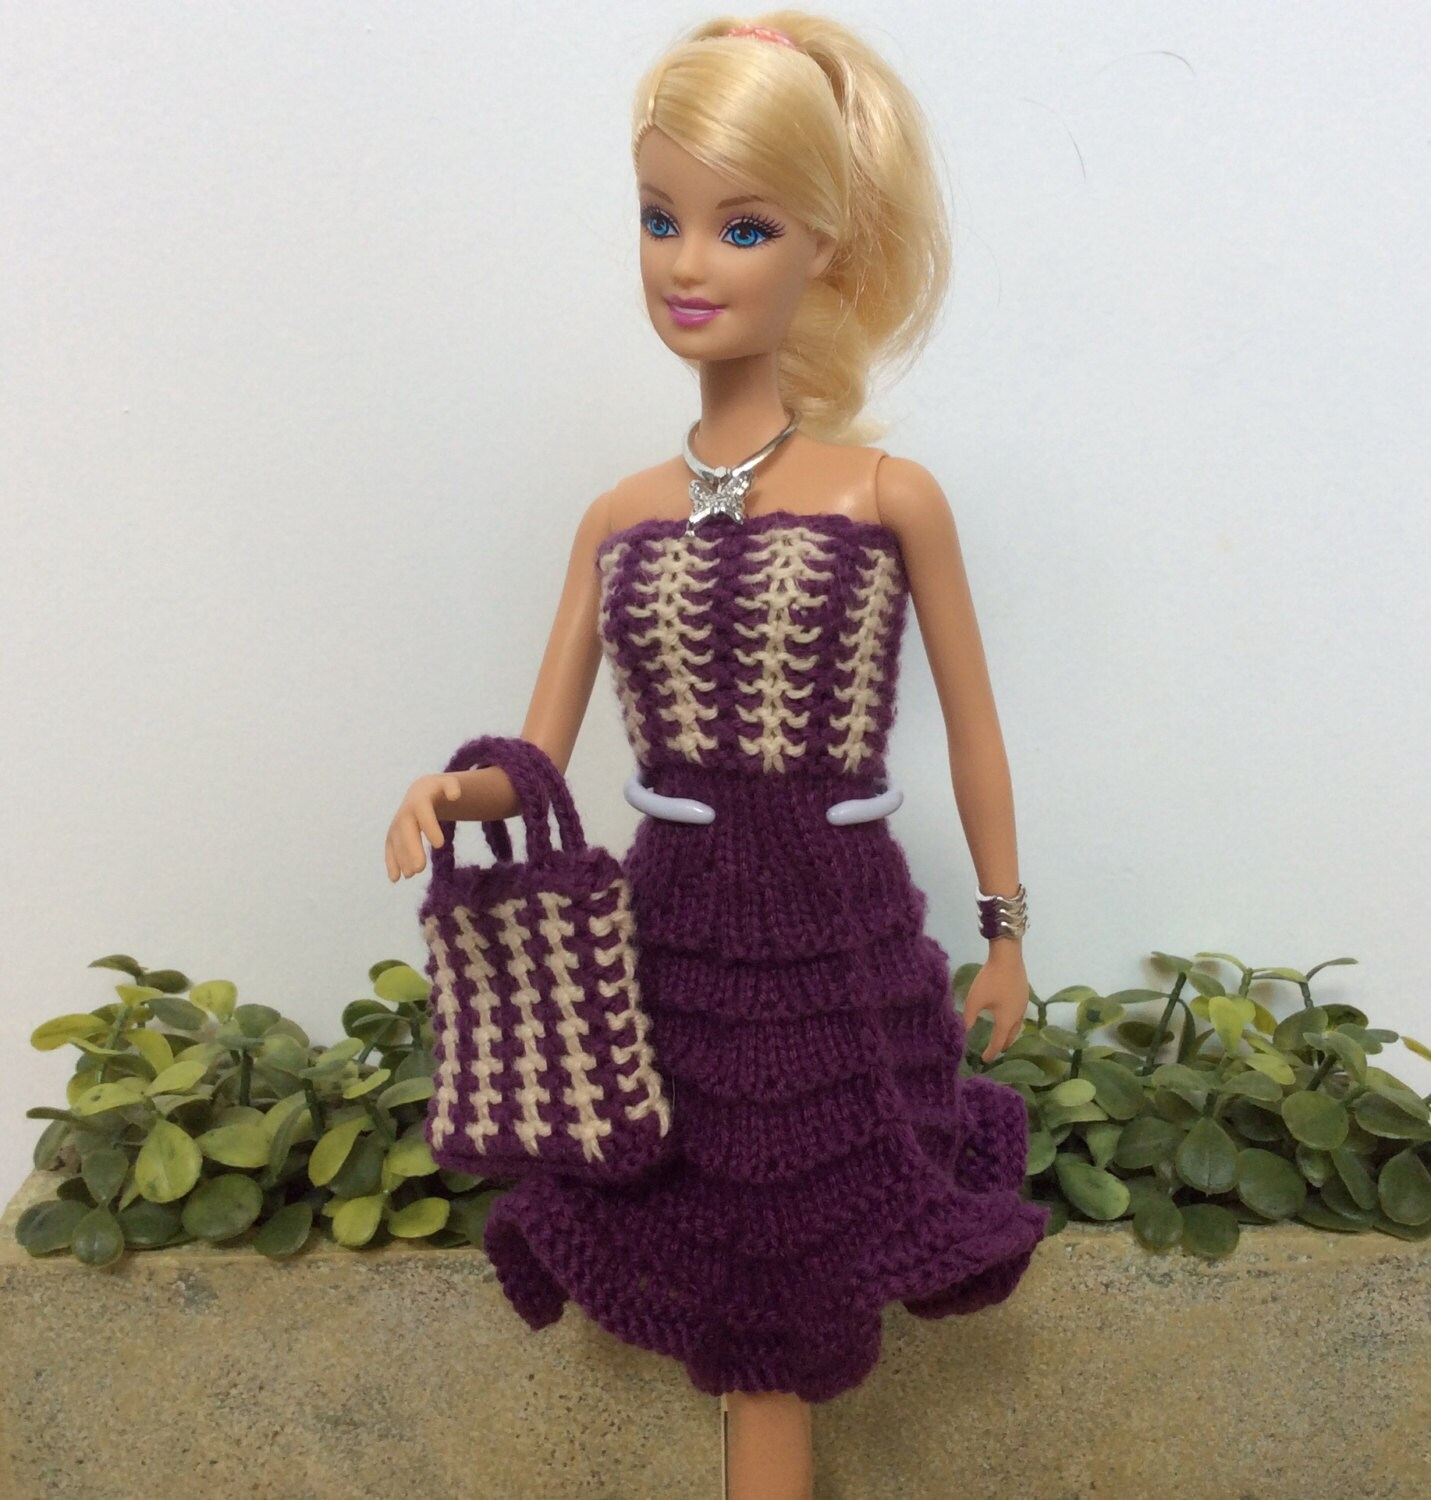 Barbie clothes pattern for knitted dress and matching handbag this is a digital file bankloansurffo Image collections